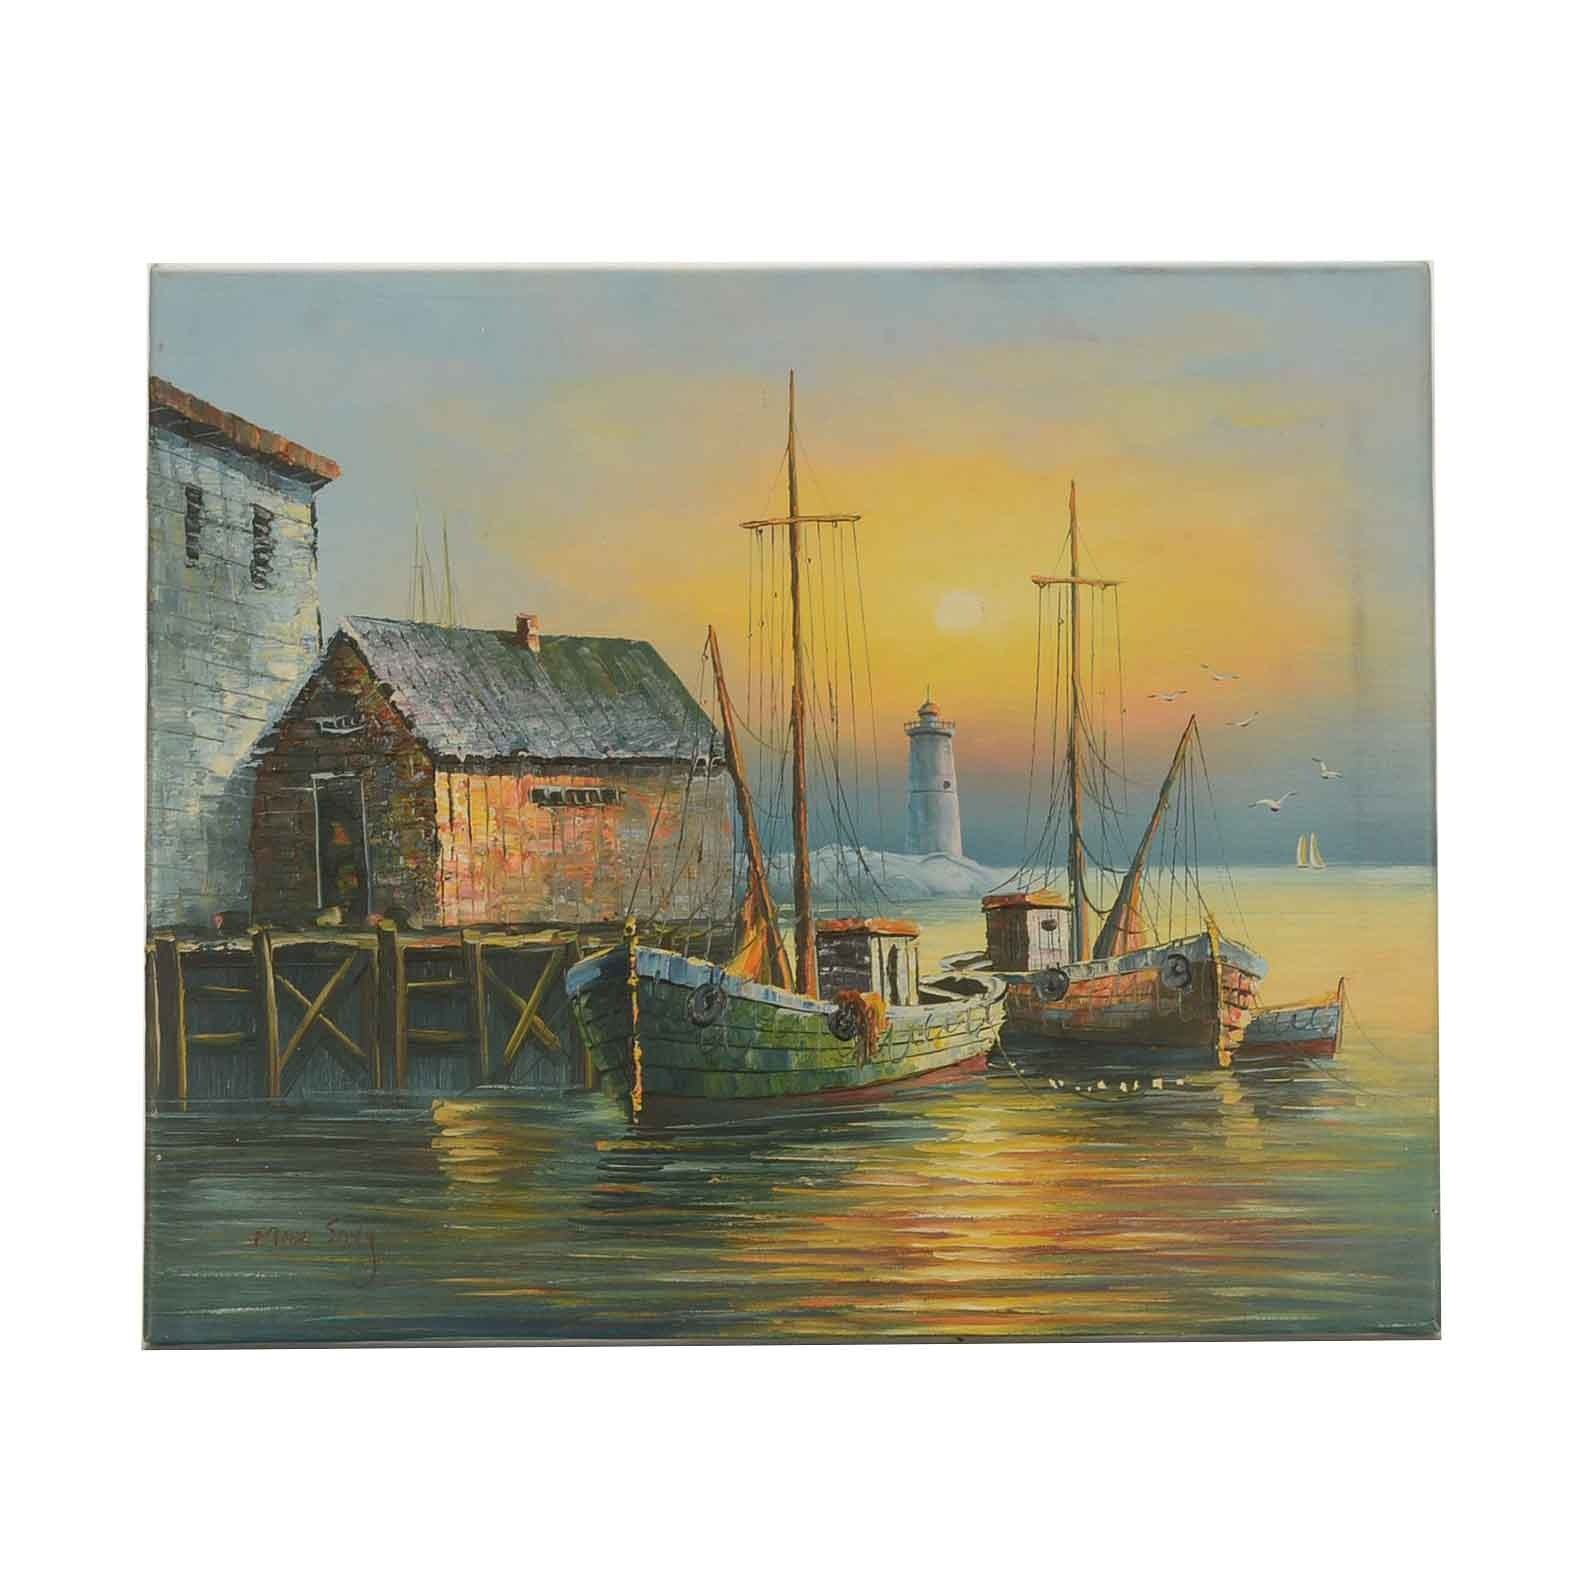 Max Savy Oil Painting of a Seascape at Sunset